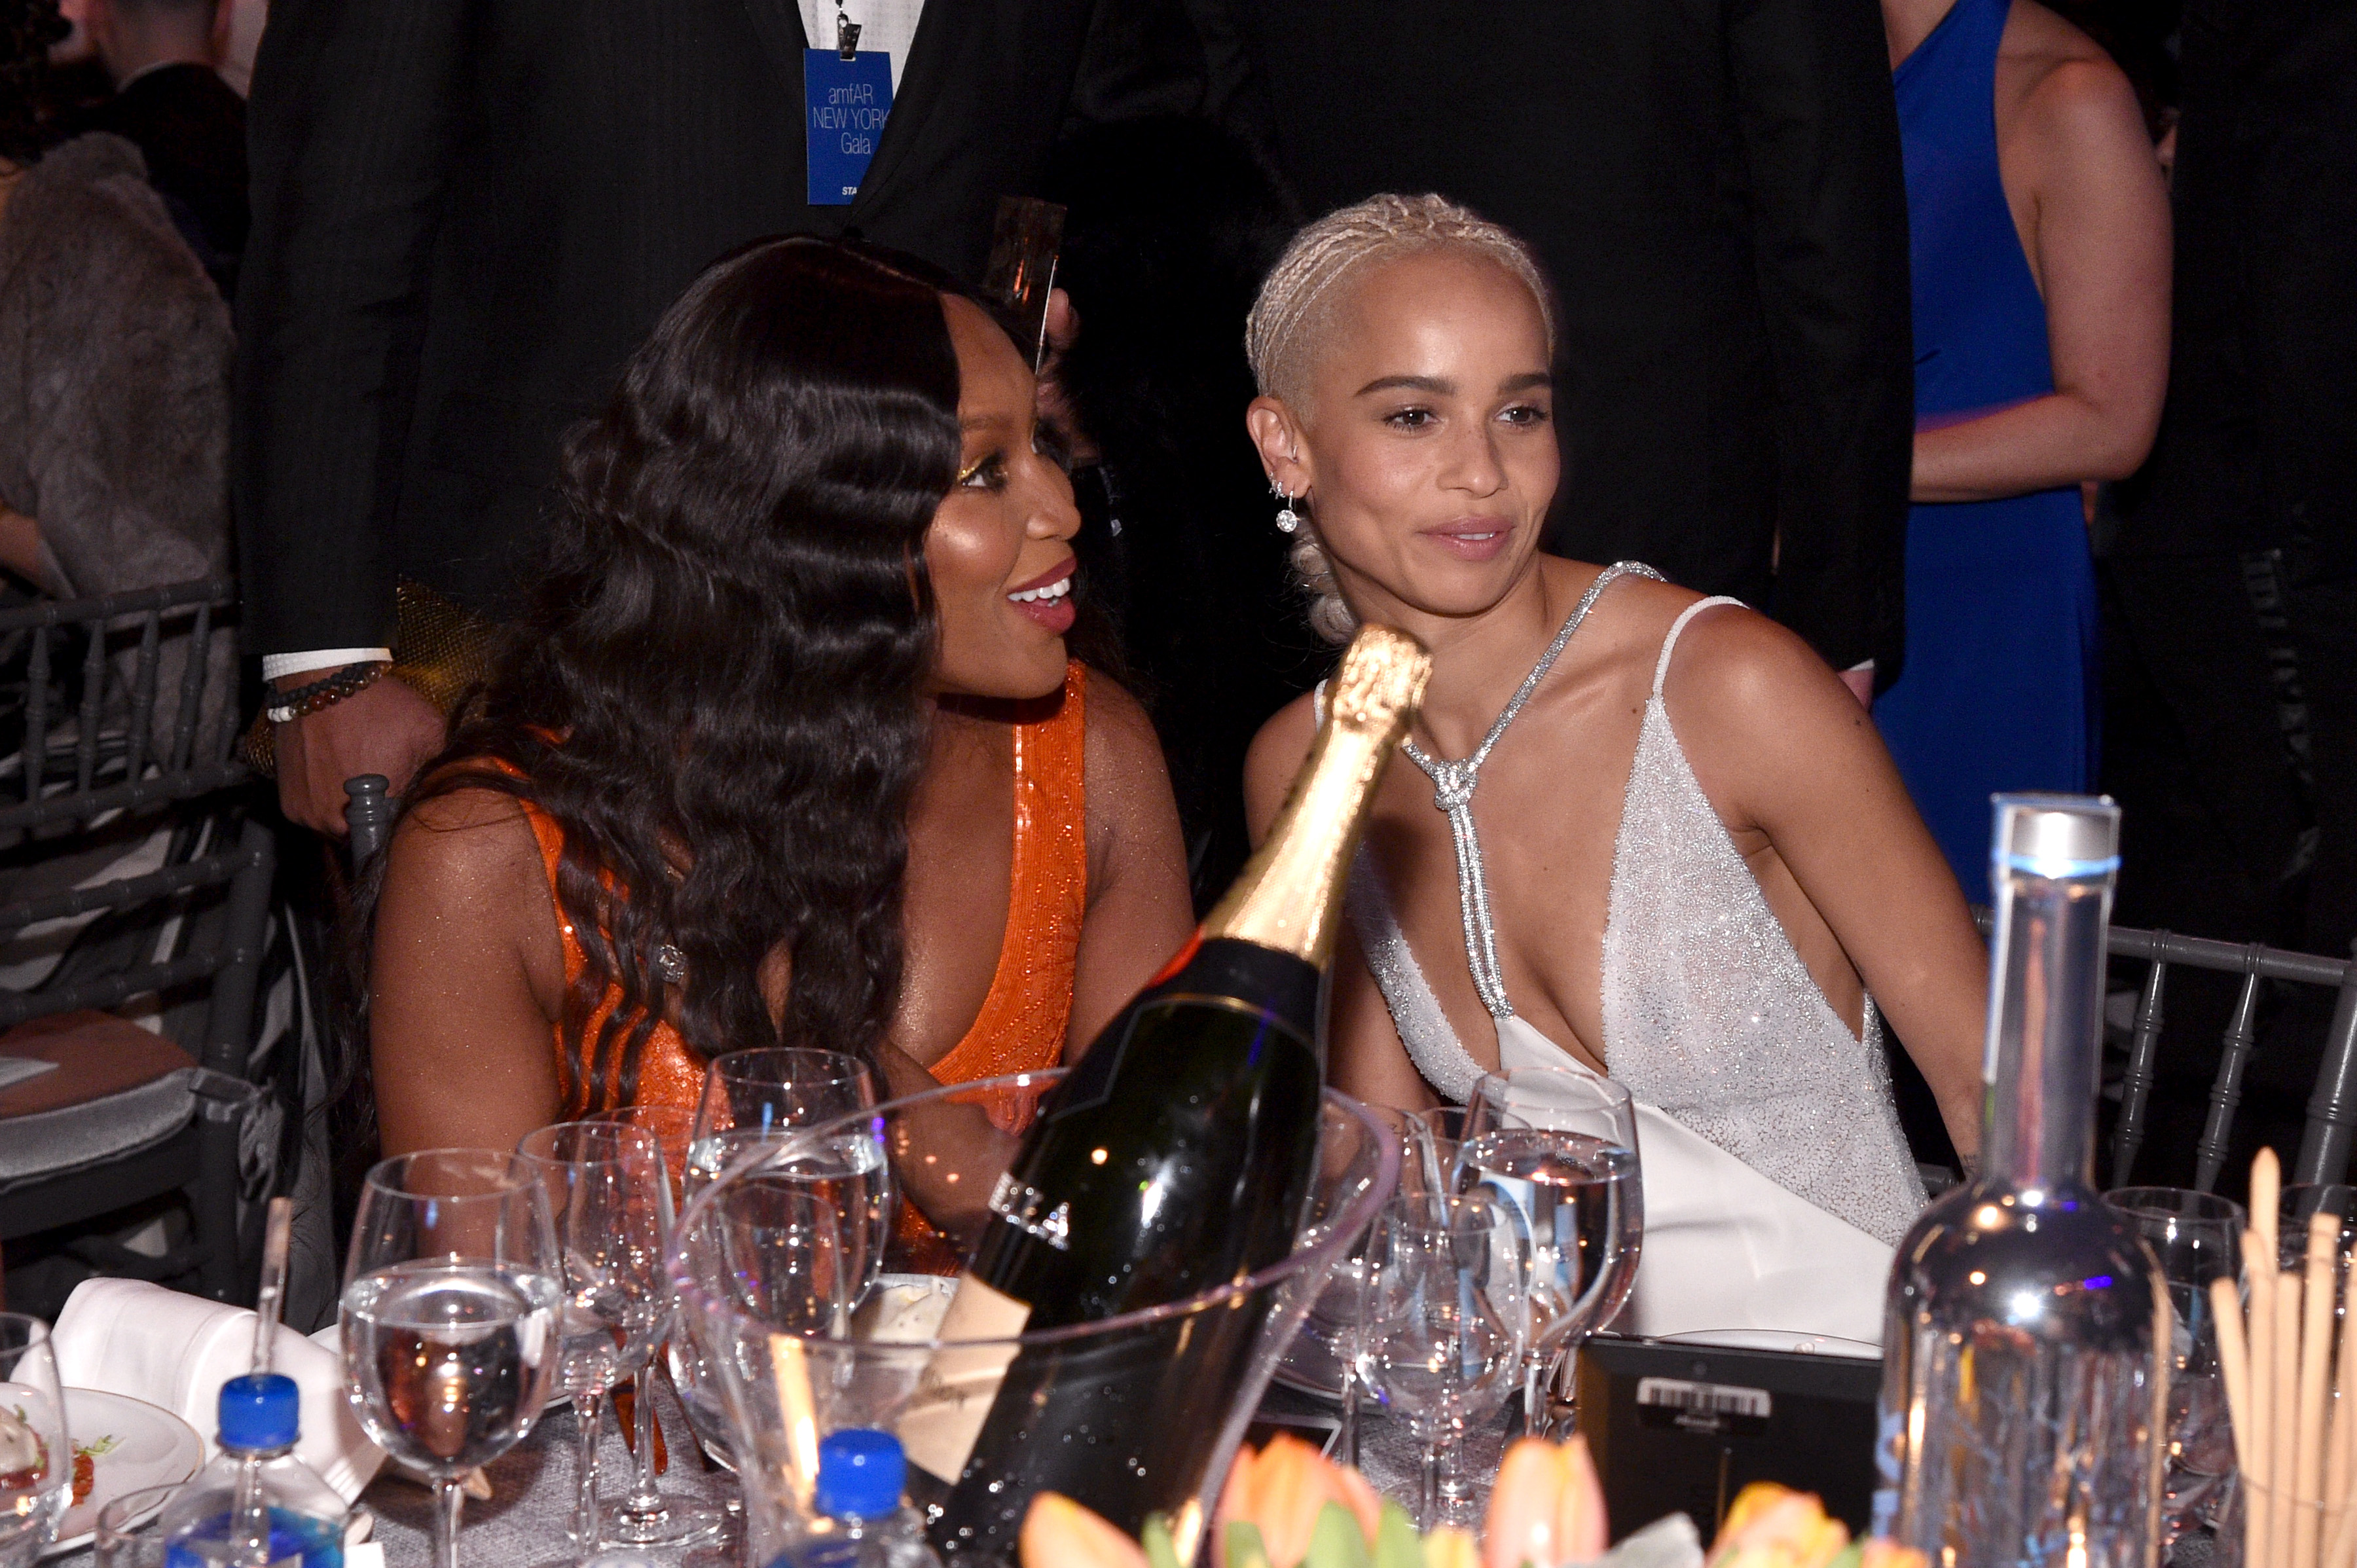 NEW YORK, NY - FEBRUARY 08:  Naomi Campbell and Zoe Kravitz attend as Moet & Chandon Toasts to the amfAR New York Gala At Cipriani Wall Street at Cipriani Wall Street on February 8, 2017 in New York City.  (Photo by Bryan Bedder/Getty Images for Moet & Chandon)